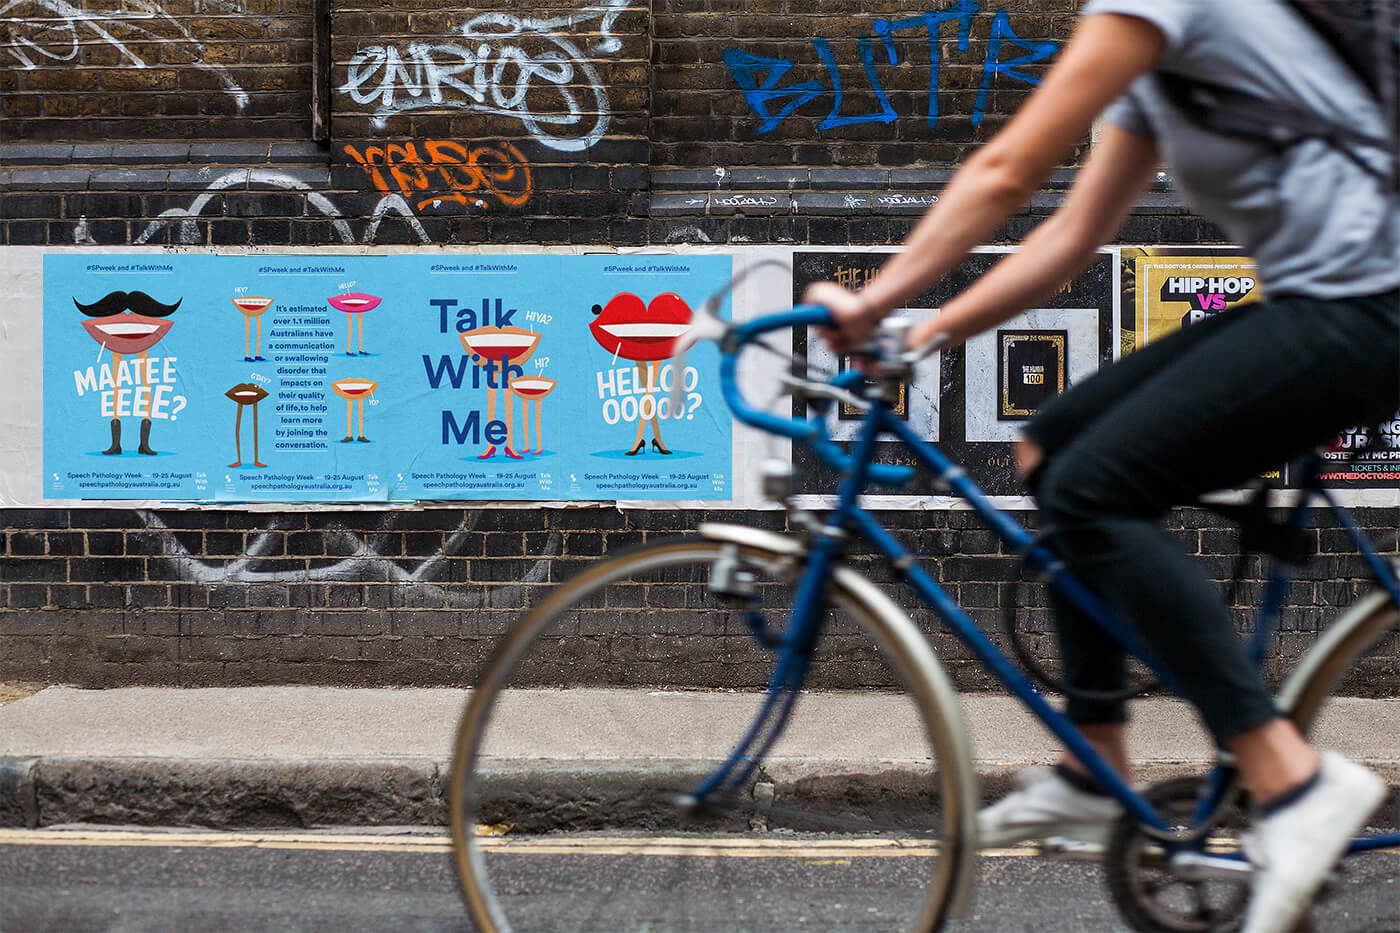 'Talk With Me' out of home posters non-profit awareness campaign.